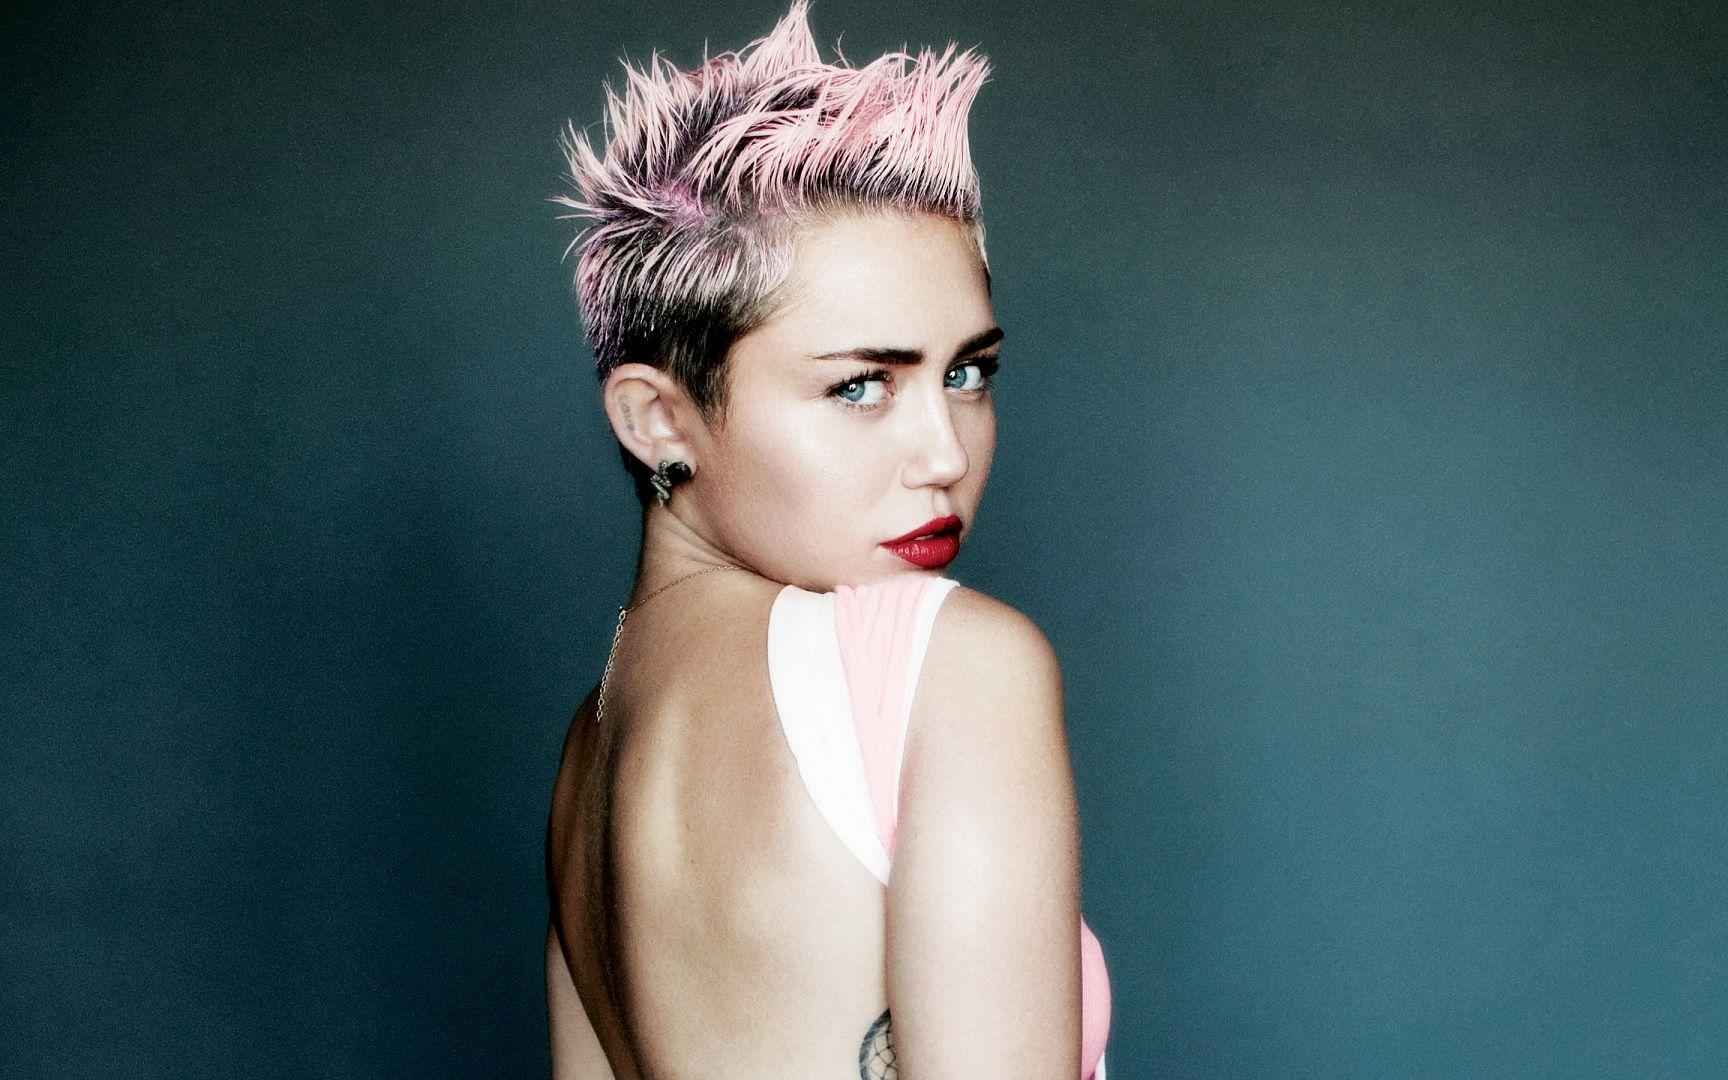 Miley Cyrus Wallpapers | Ultra High Quality Wallpapers